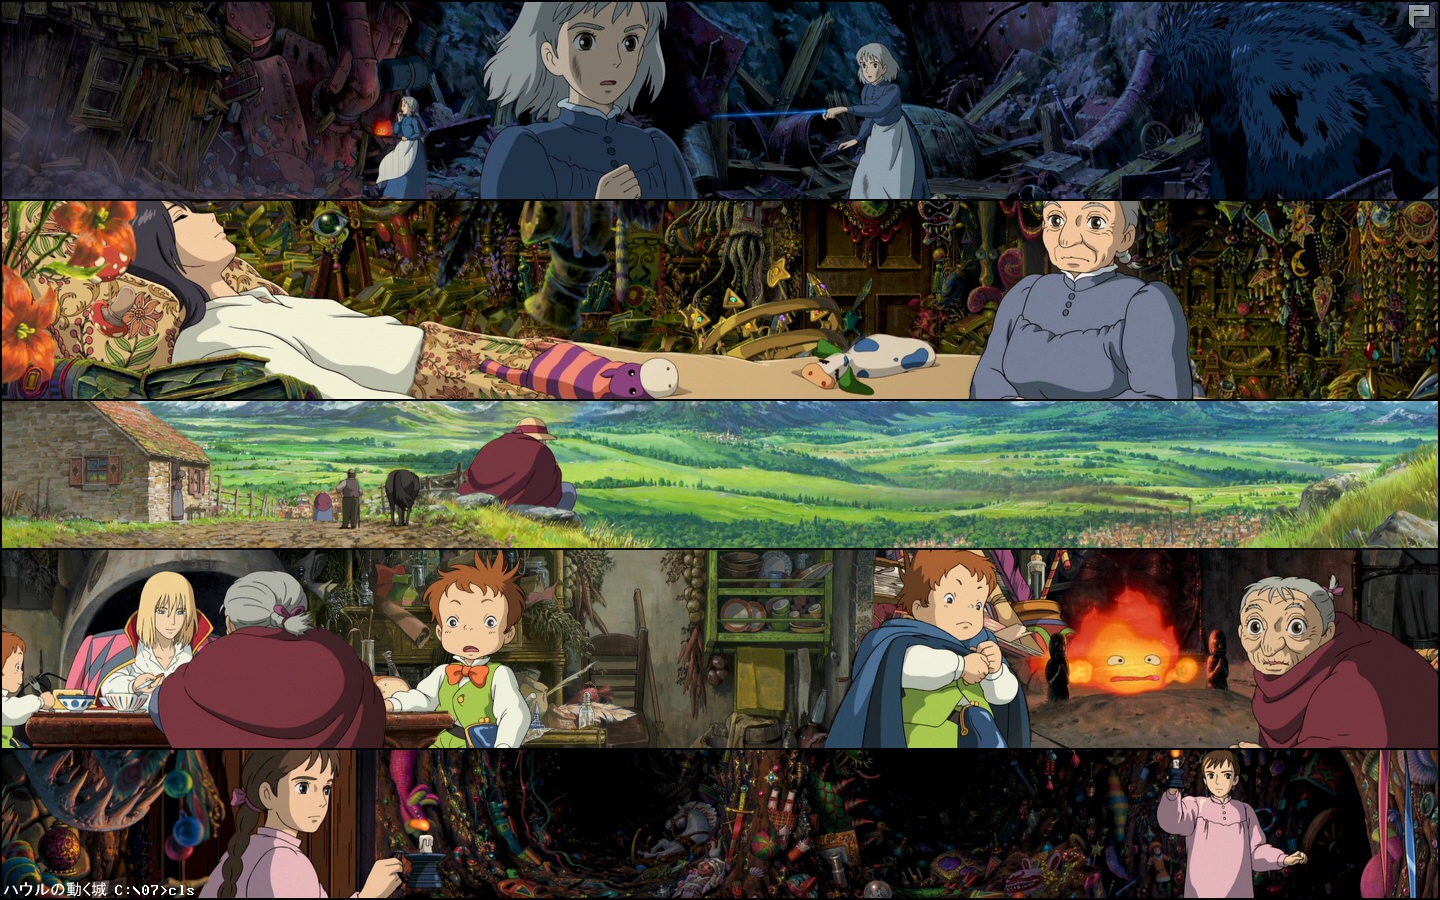 https://i1.wp.com/www.mithmeoi.net/wp-content/uploads/2009/10/HowlsMovingCastle_by_cls.jpg